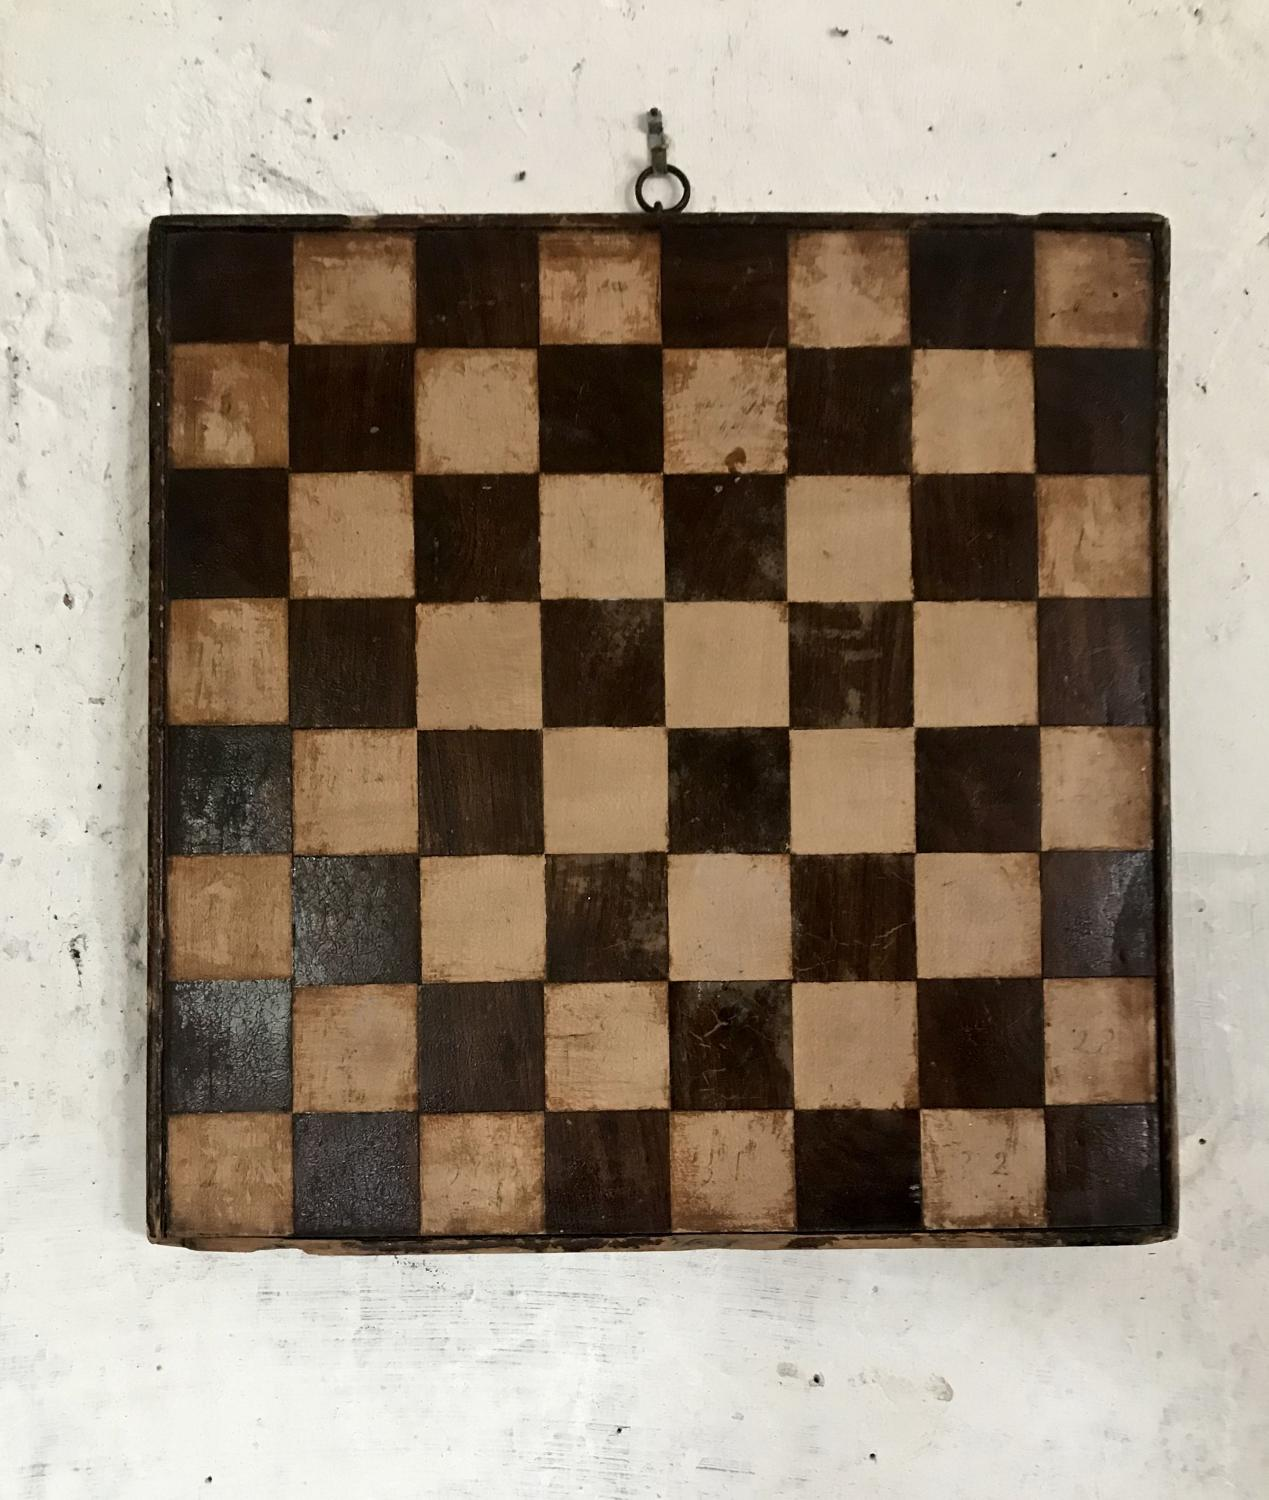 Primitive folk art wood inlay games board